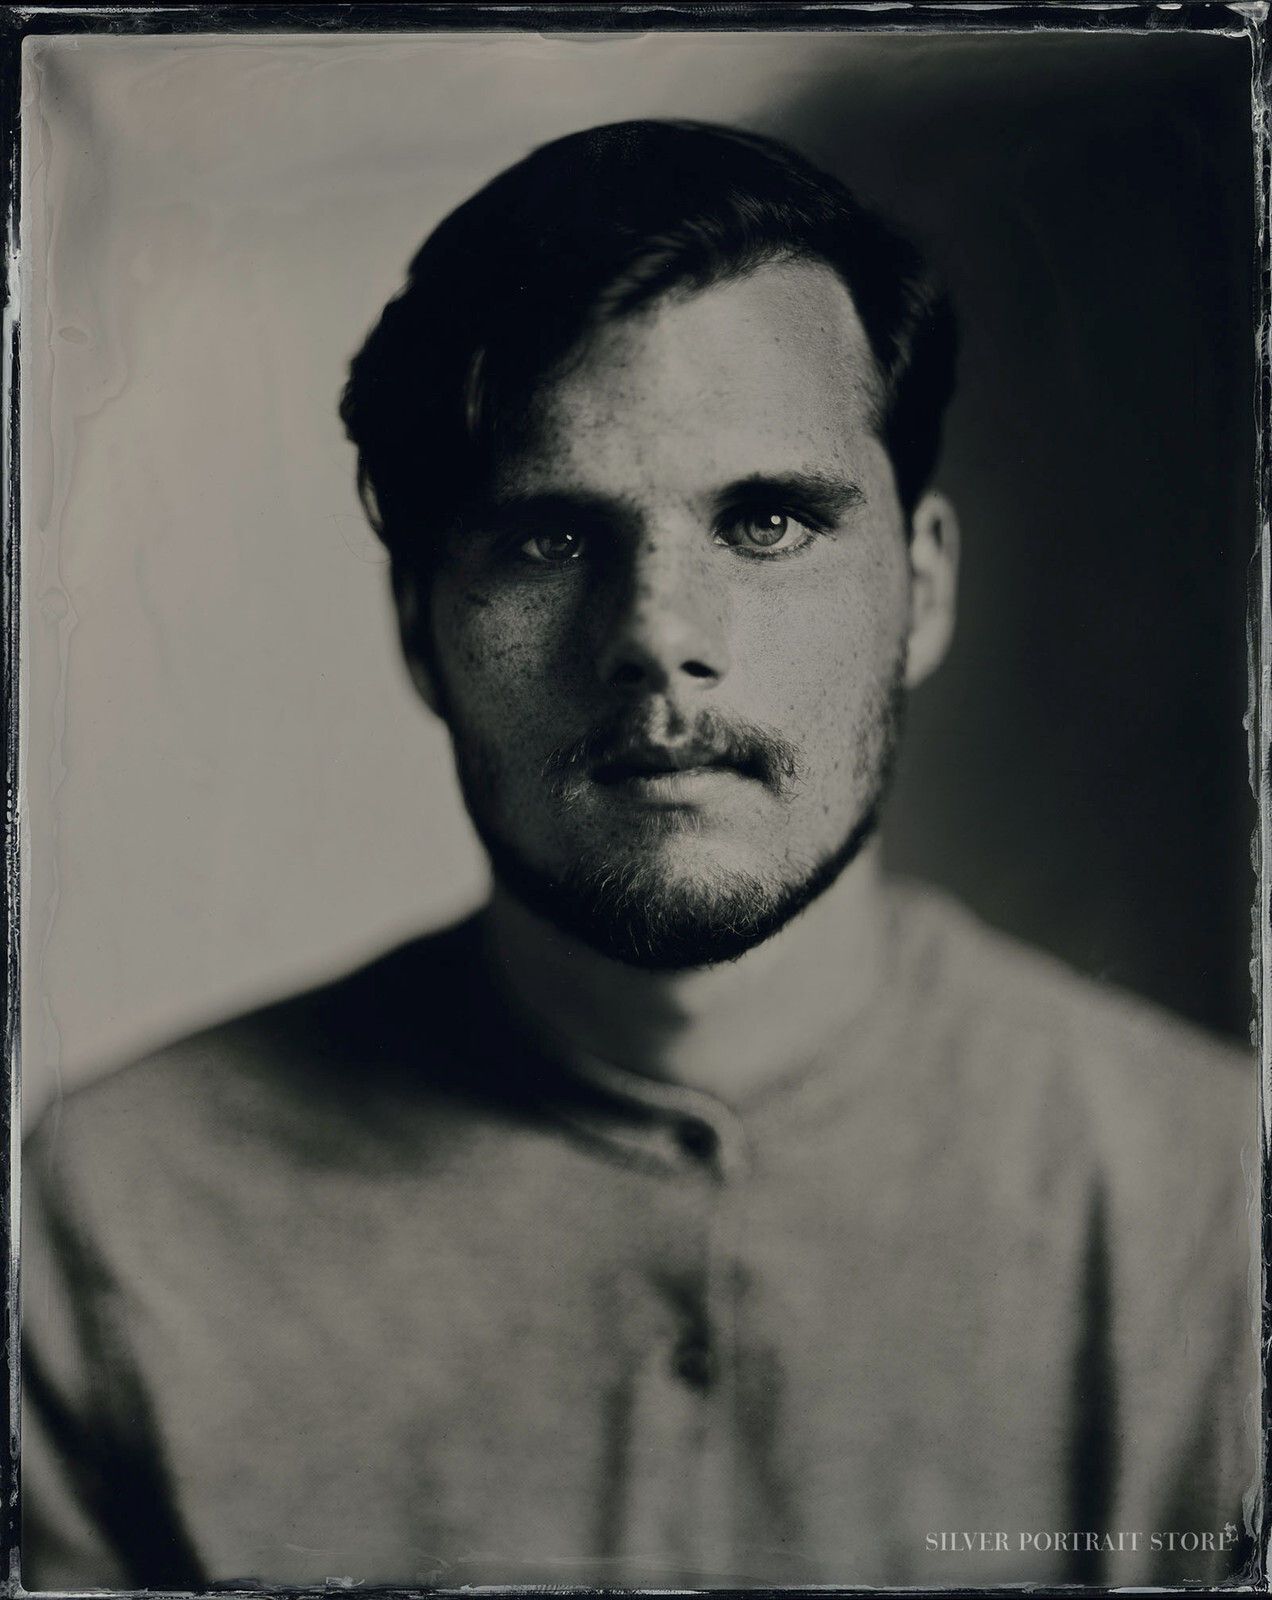 Max-Silver Portrait Store-Scan from Wet plate collodion-Tintype 20 x 25 cm